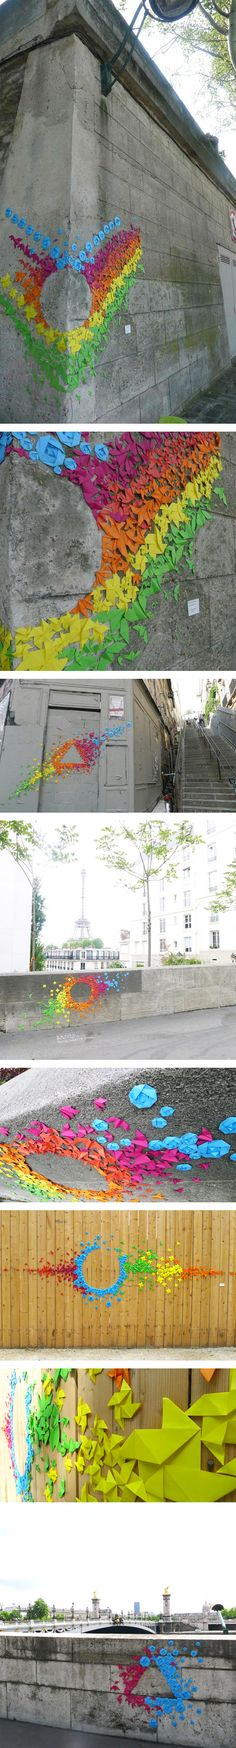 Street Art ::: Origami graffitis in Paris signed Mademoiselle Maurice